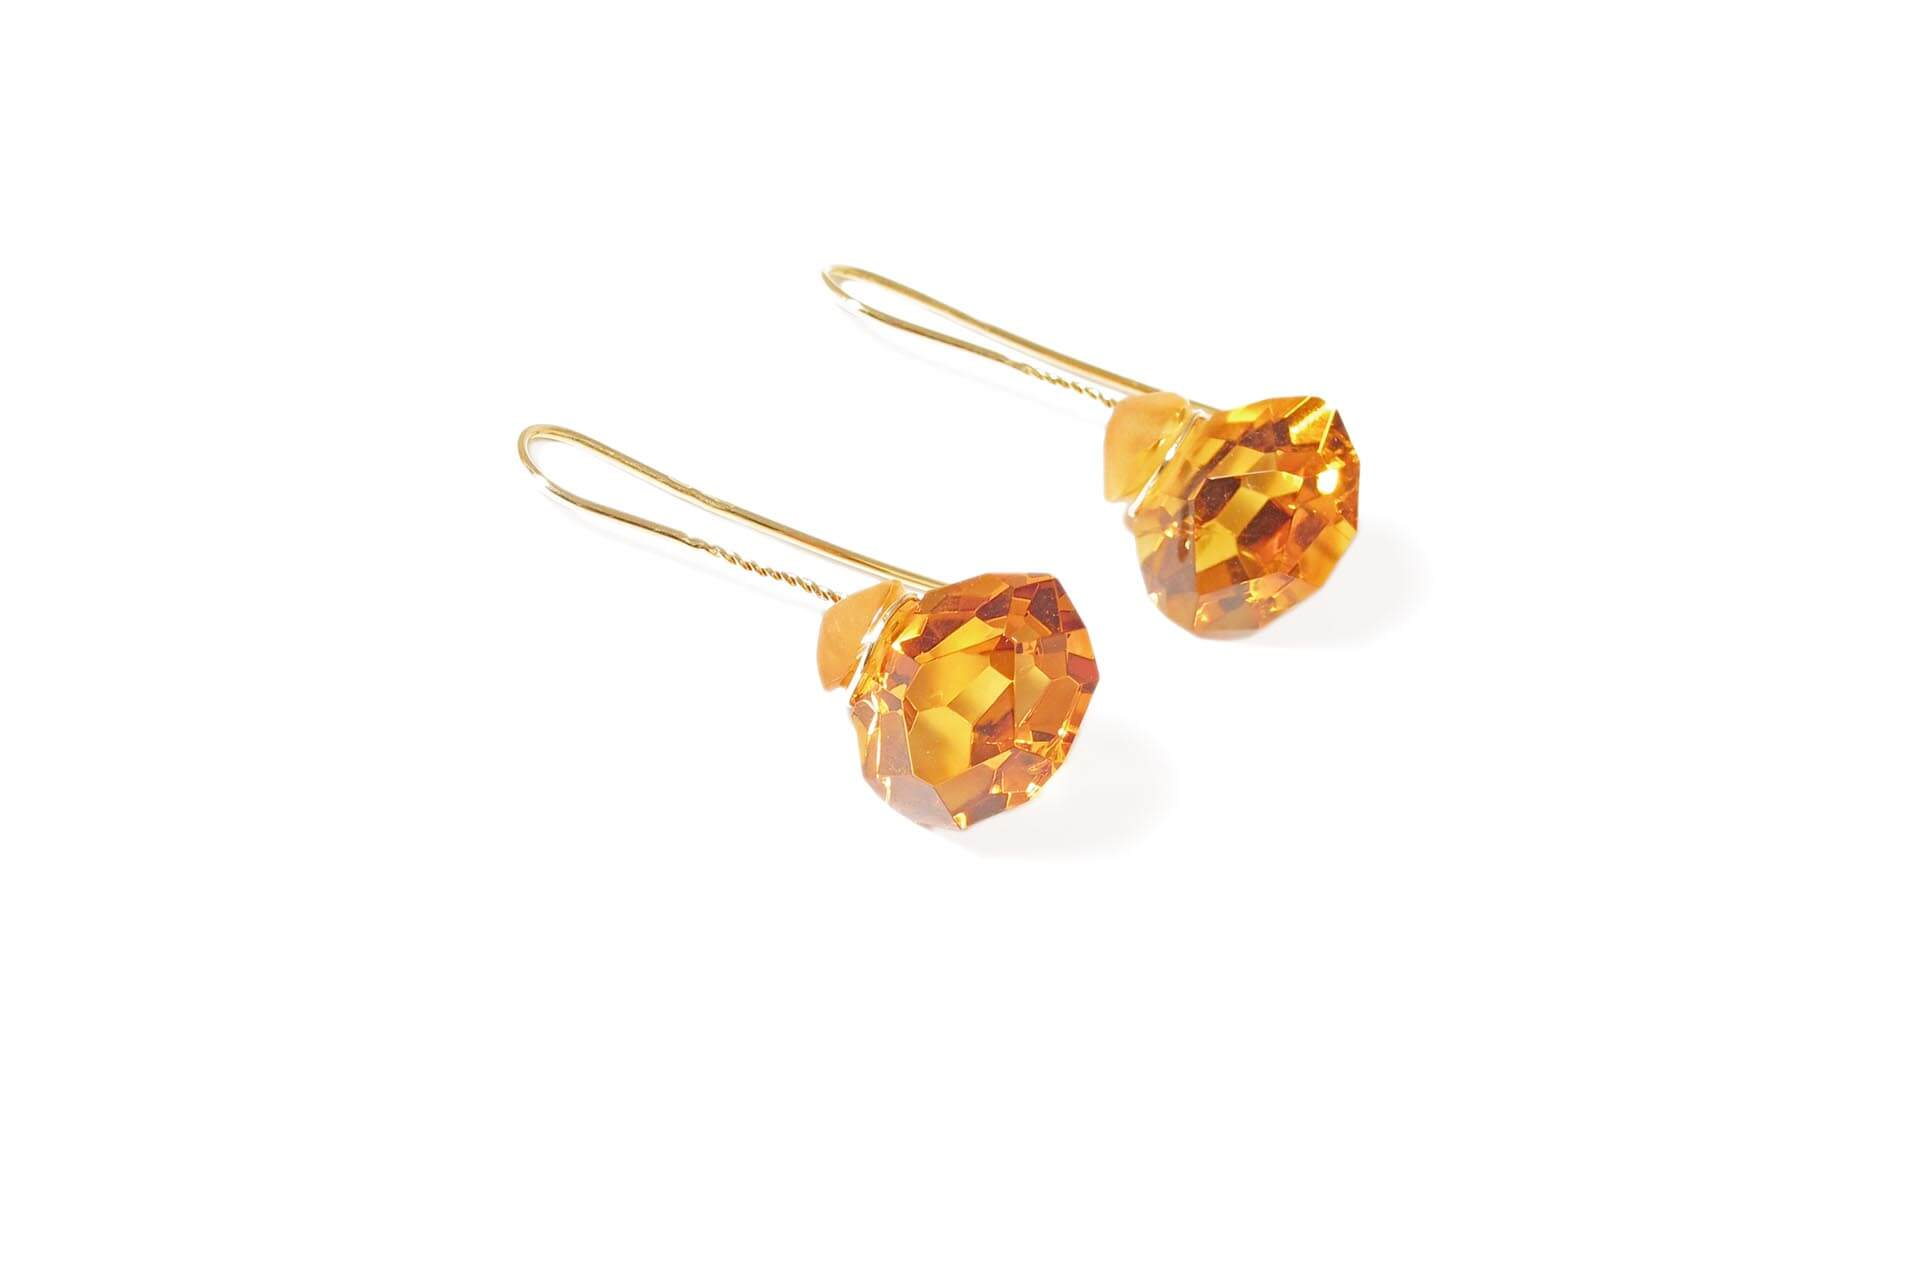 Annette Ehinger yellow gold earrings with orange citrines.